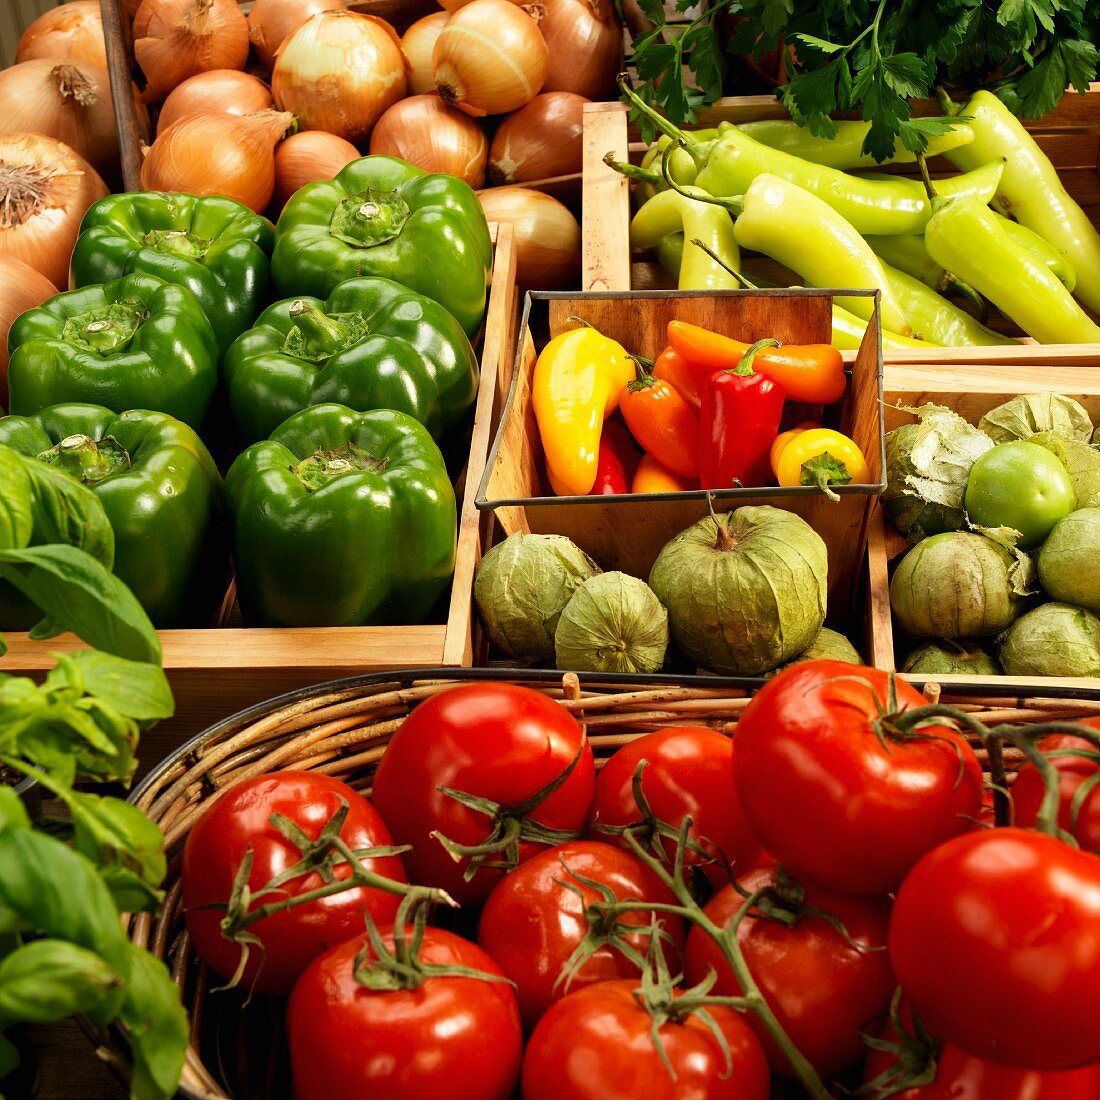 Organic tomatoes, tomatillos, peppers, jalapeños, onions and basil in containers at a farmers market